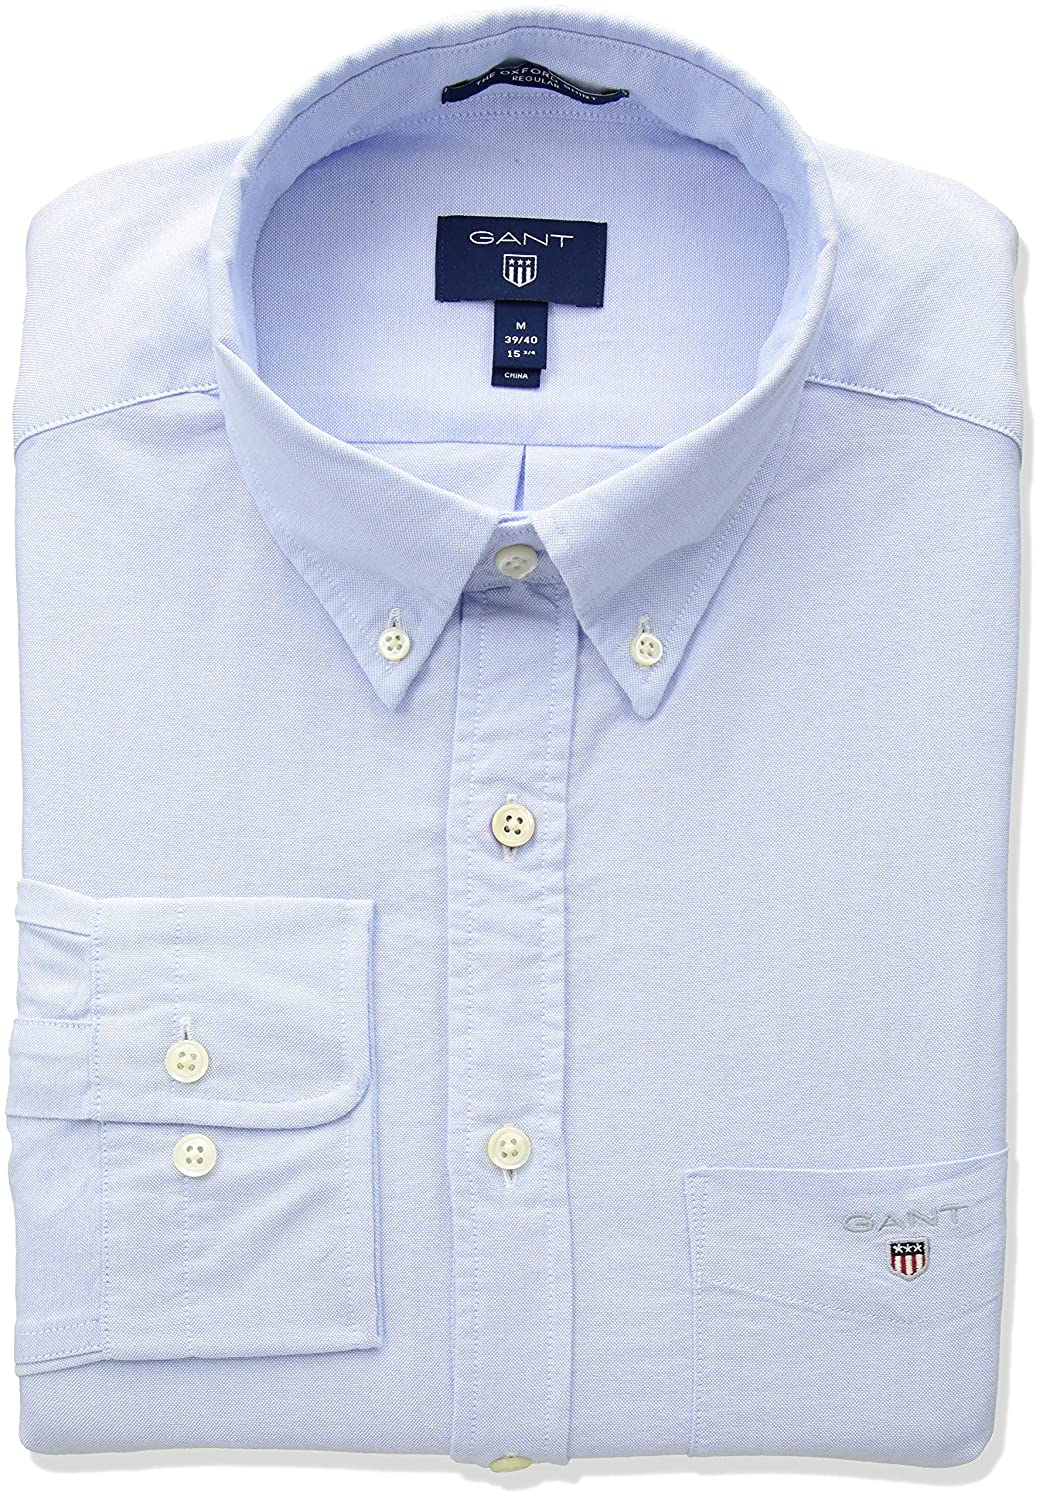 TALLA XL. Gant The Oxford Shirt Reg BD Camisa para Hombre